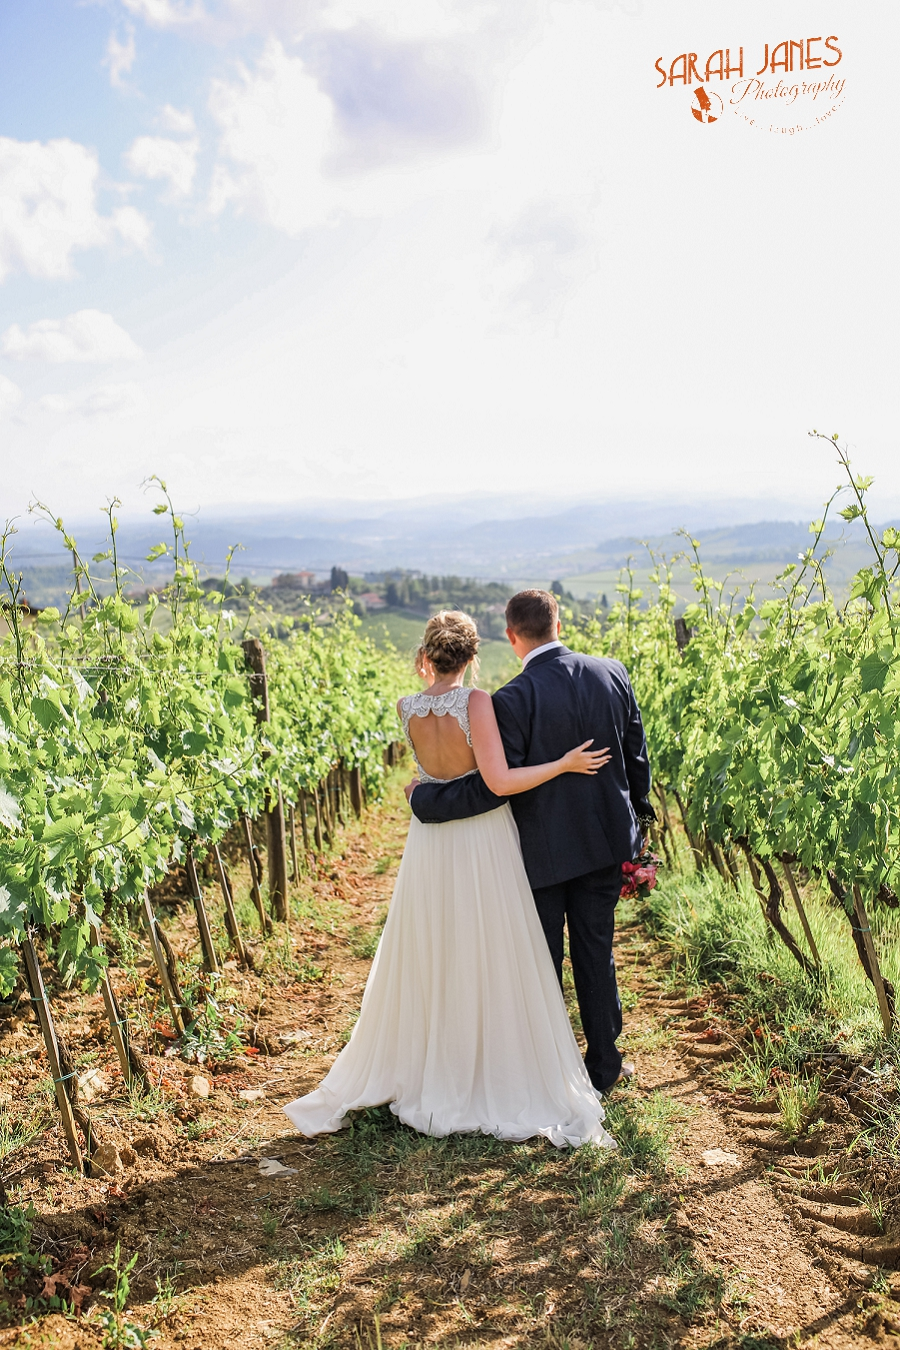 Sarah Janes Photography, Italy wedding photography, wedding photography at Le Fonti delle Meraviglie, UK Destination wedding photography_0068.jpg